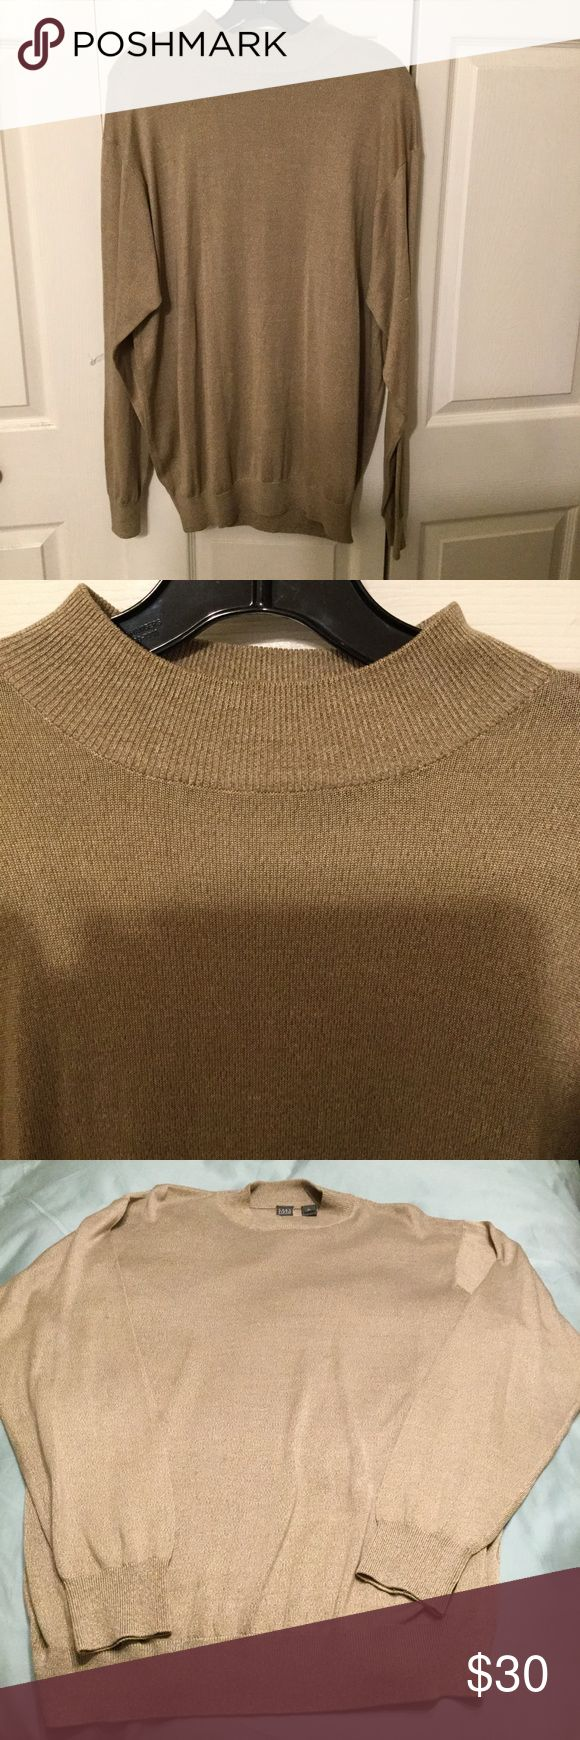 100% silk Saks sweater Tanish  light brown 100% silk long sleeve sweater....very soft and light.  Has two very small unnoticeable snags in lower back as shown...otherwise good condition. Saks Fifth Avenue Sweaters